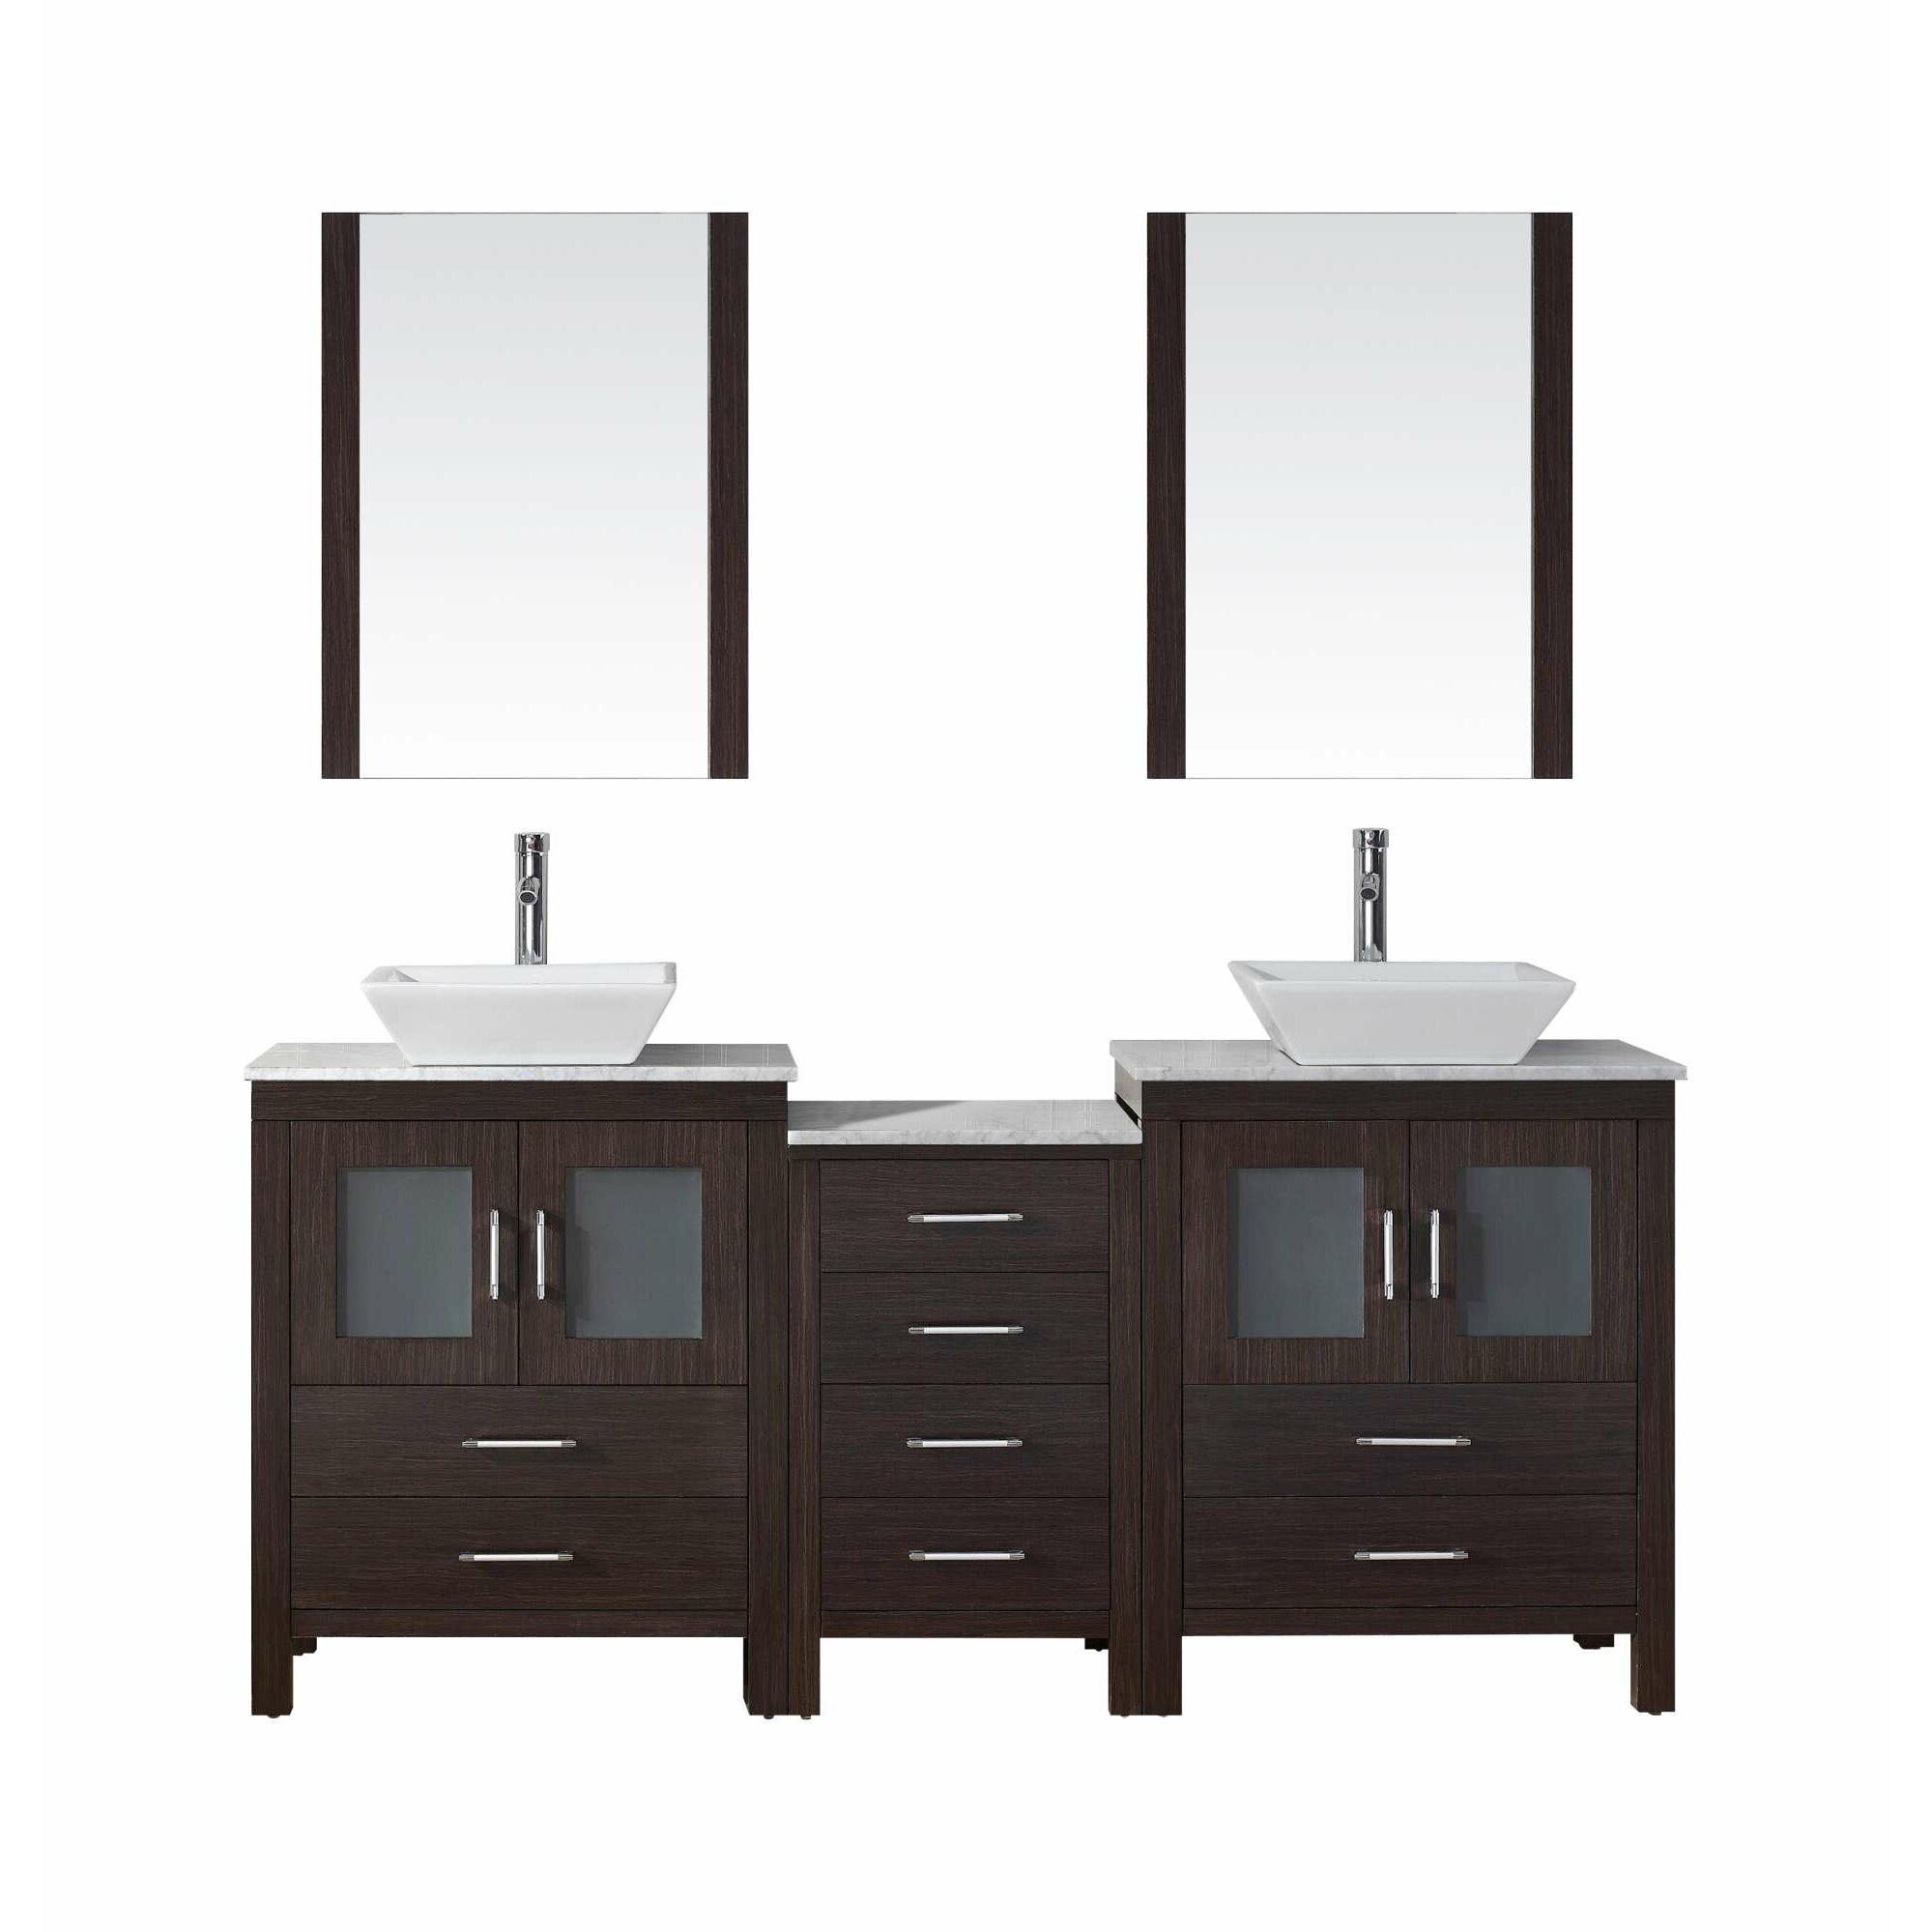 Virtu dior 75 double bathroom vanity set with mirror for Bathroom vanities and mirrors